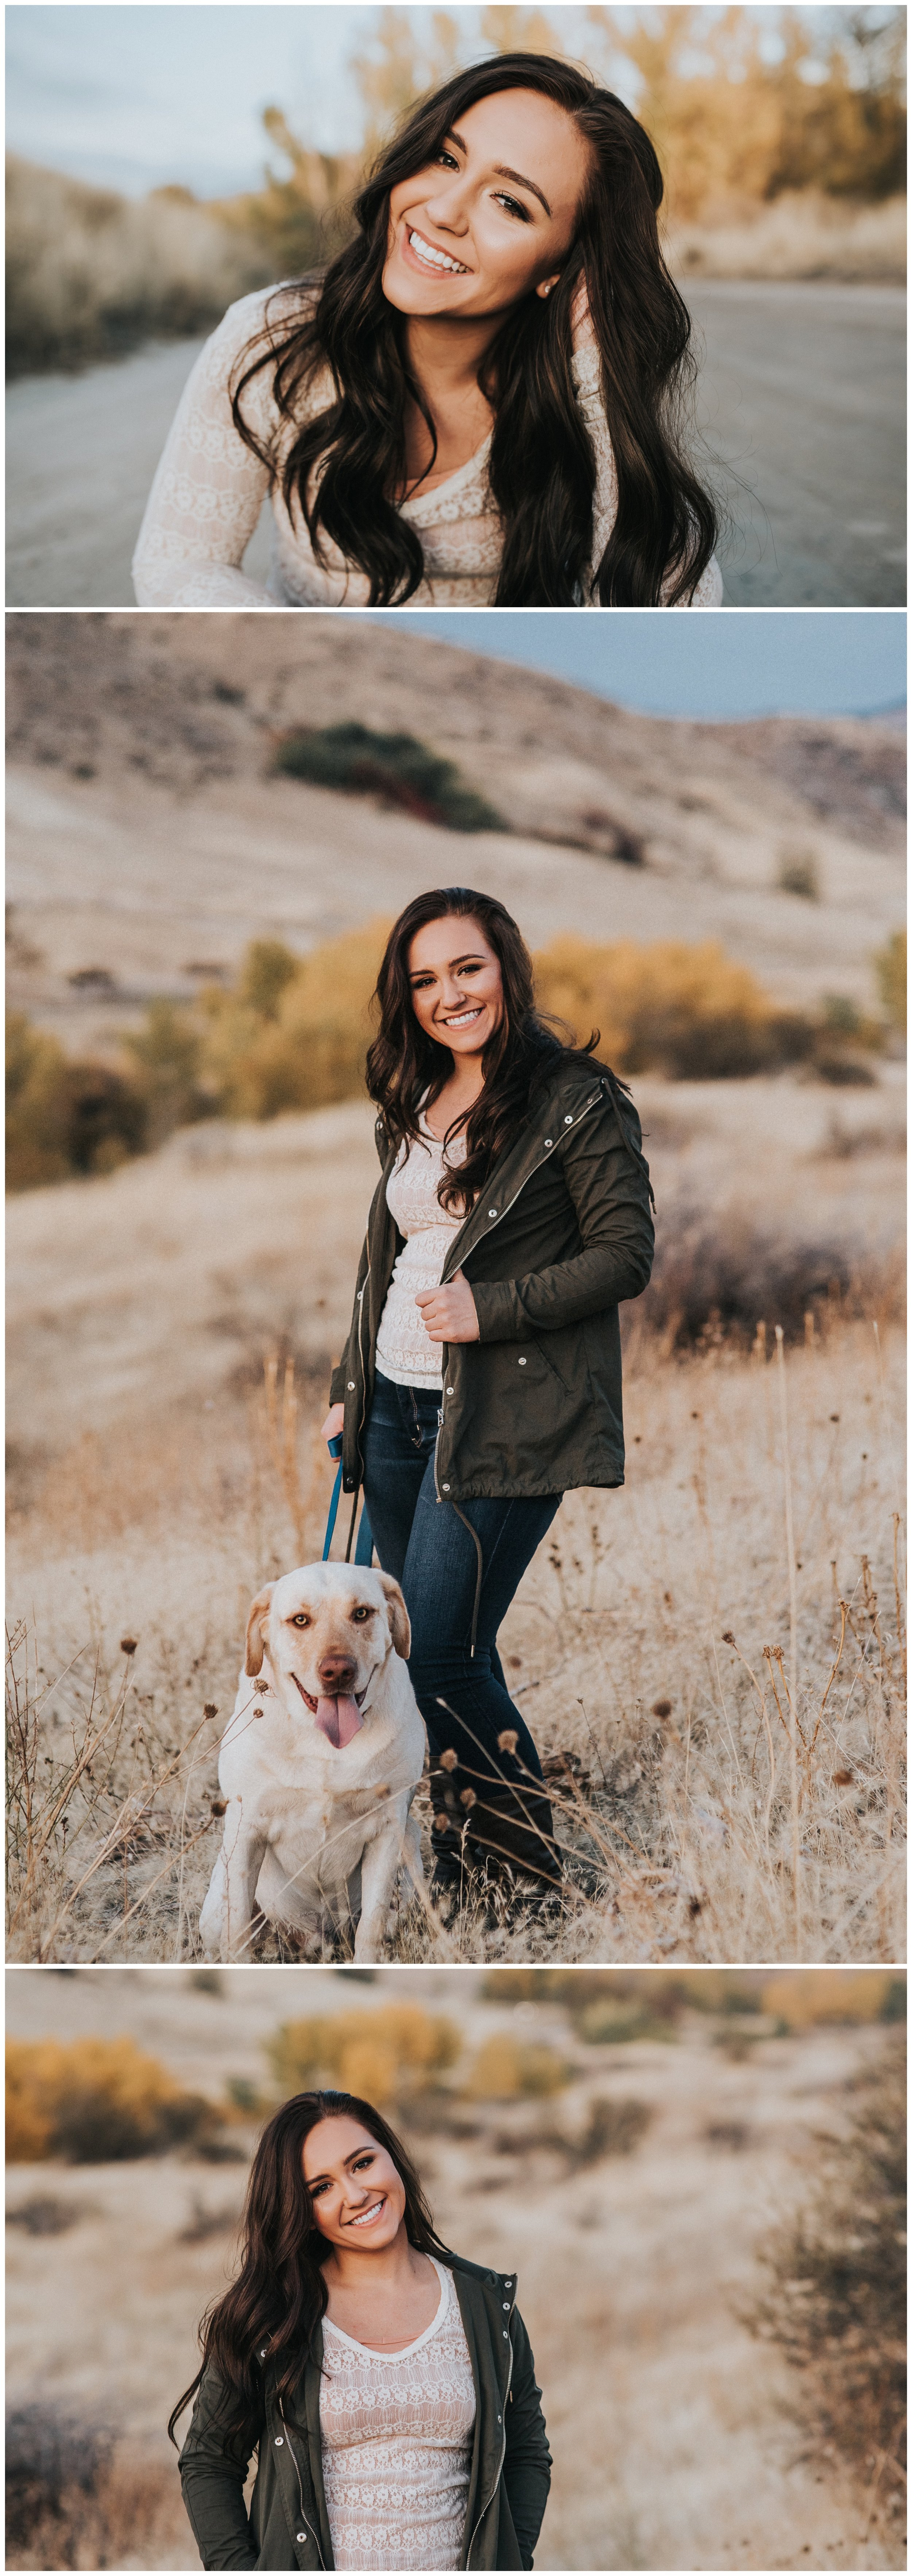 Boise Senior Photographer Compass Charter Class of 2017 Downtown Boise Military Reserve Fall Senior Pictures Girl Laughter